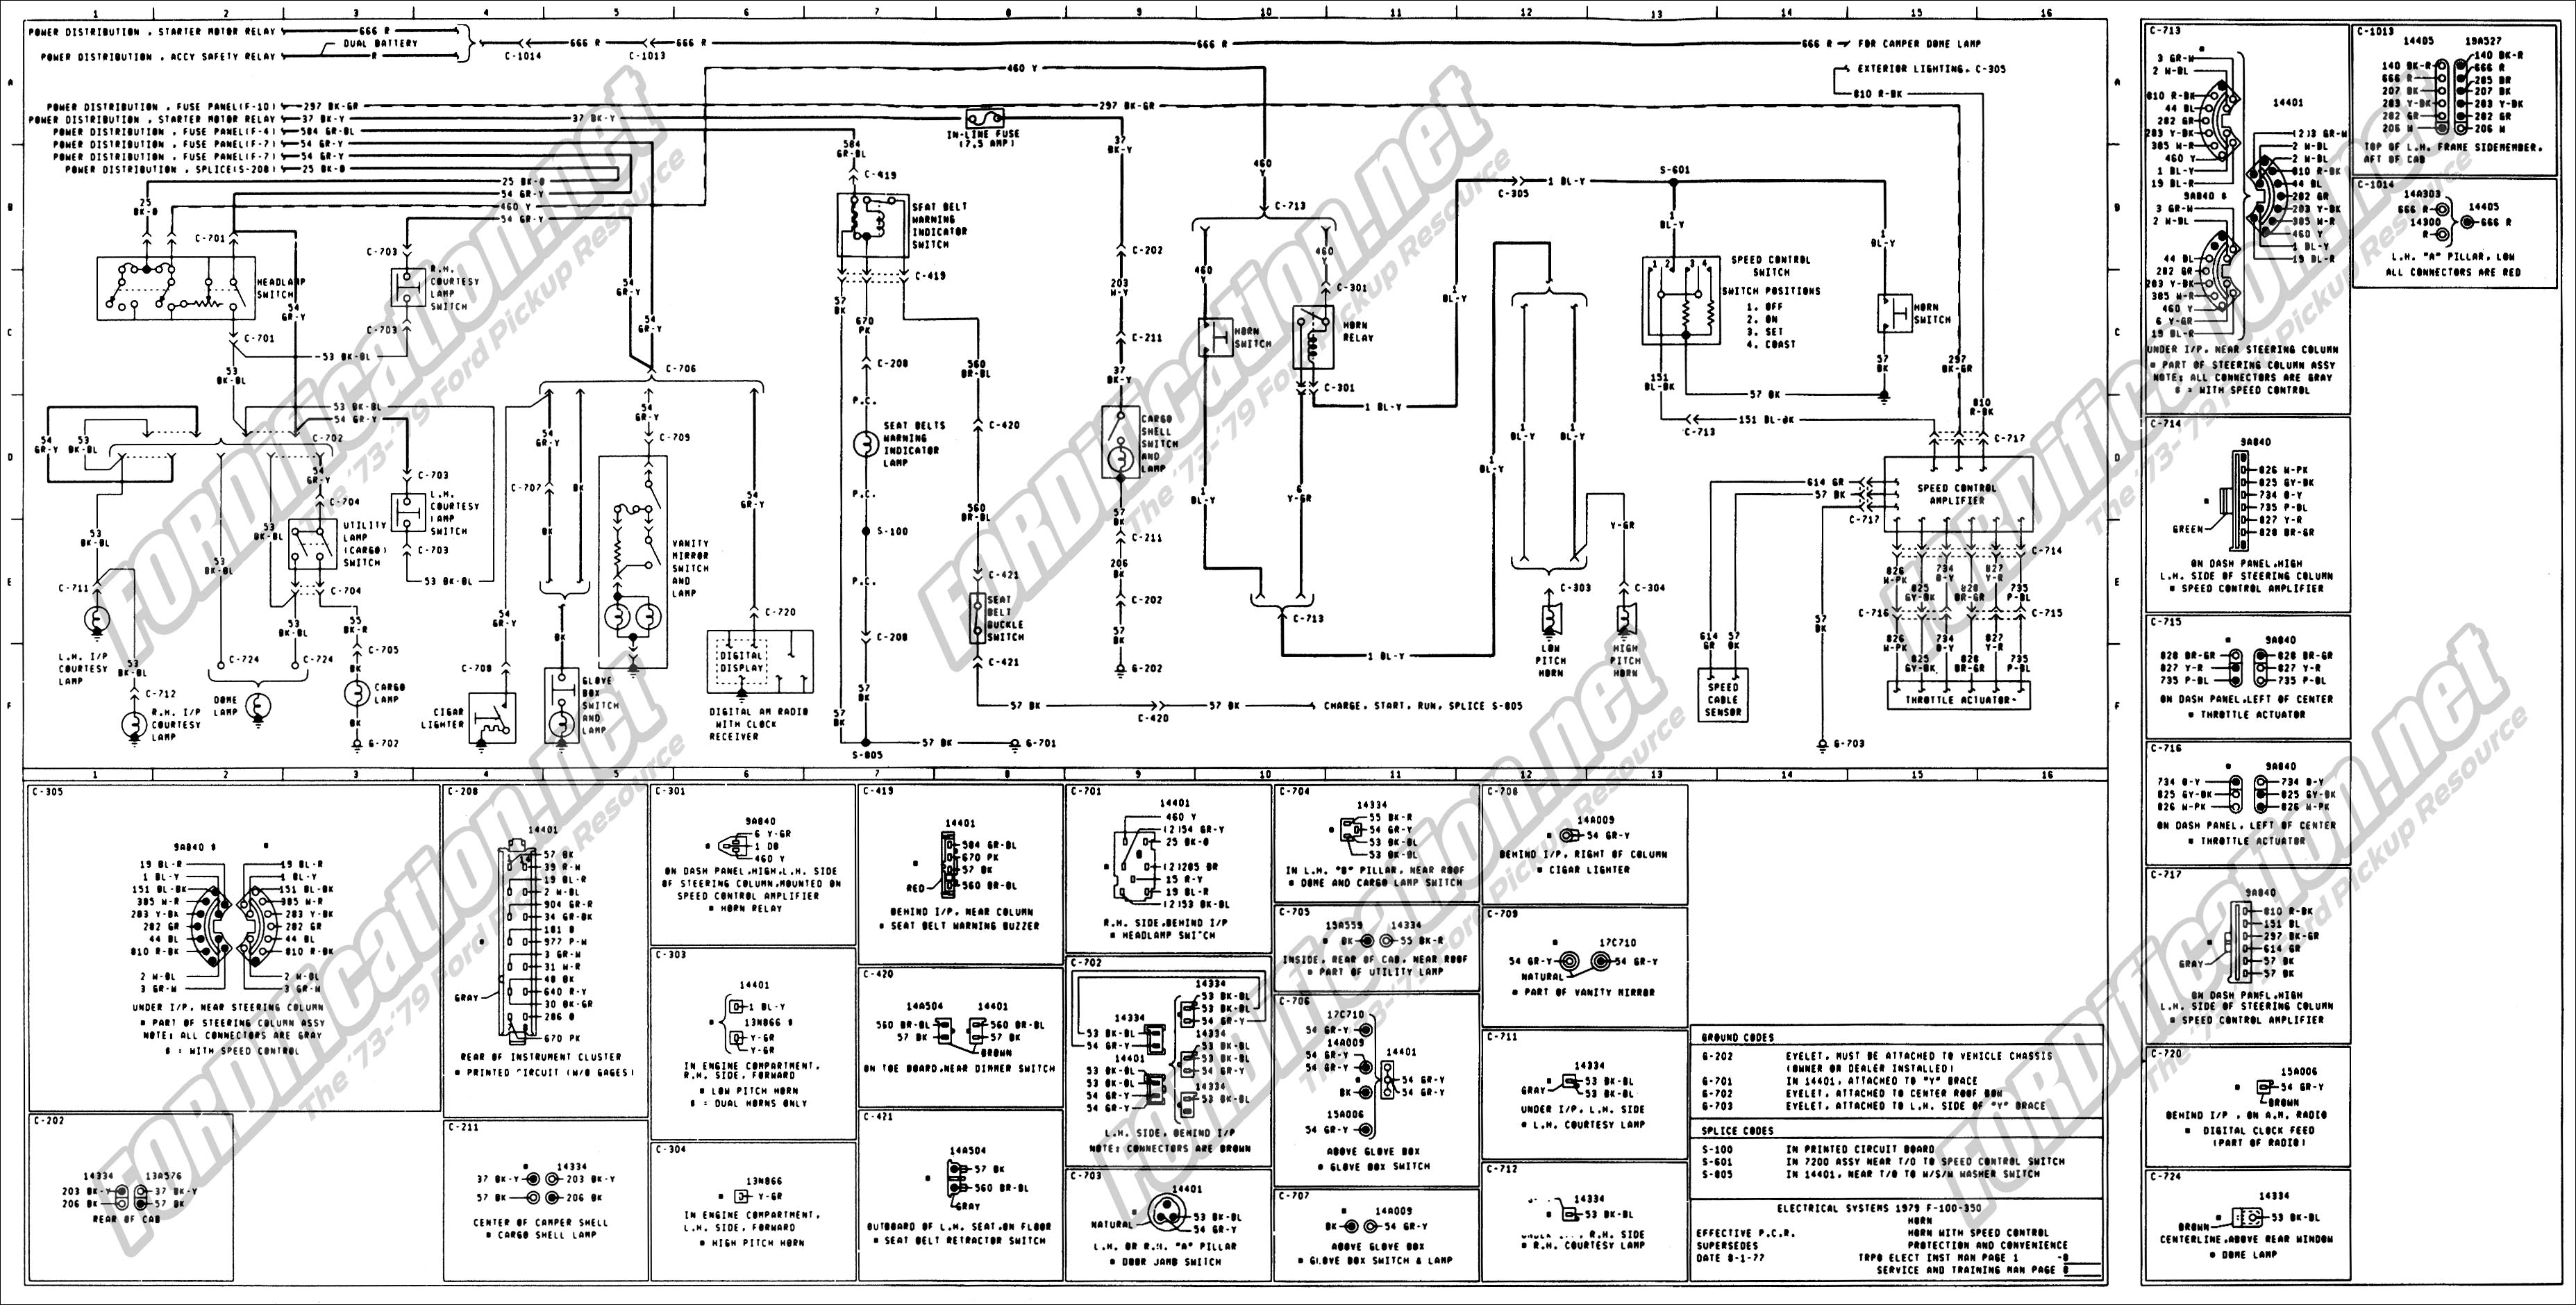 1978 Ford F 150 Wiring Diagram Electrical Diagrams 2010 Stereo 1973 1979 Truck Schematics Fordification Net 2001 Windstar Radio